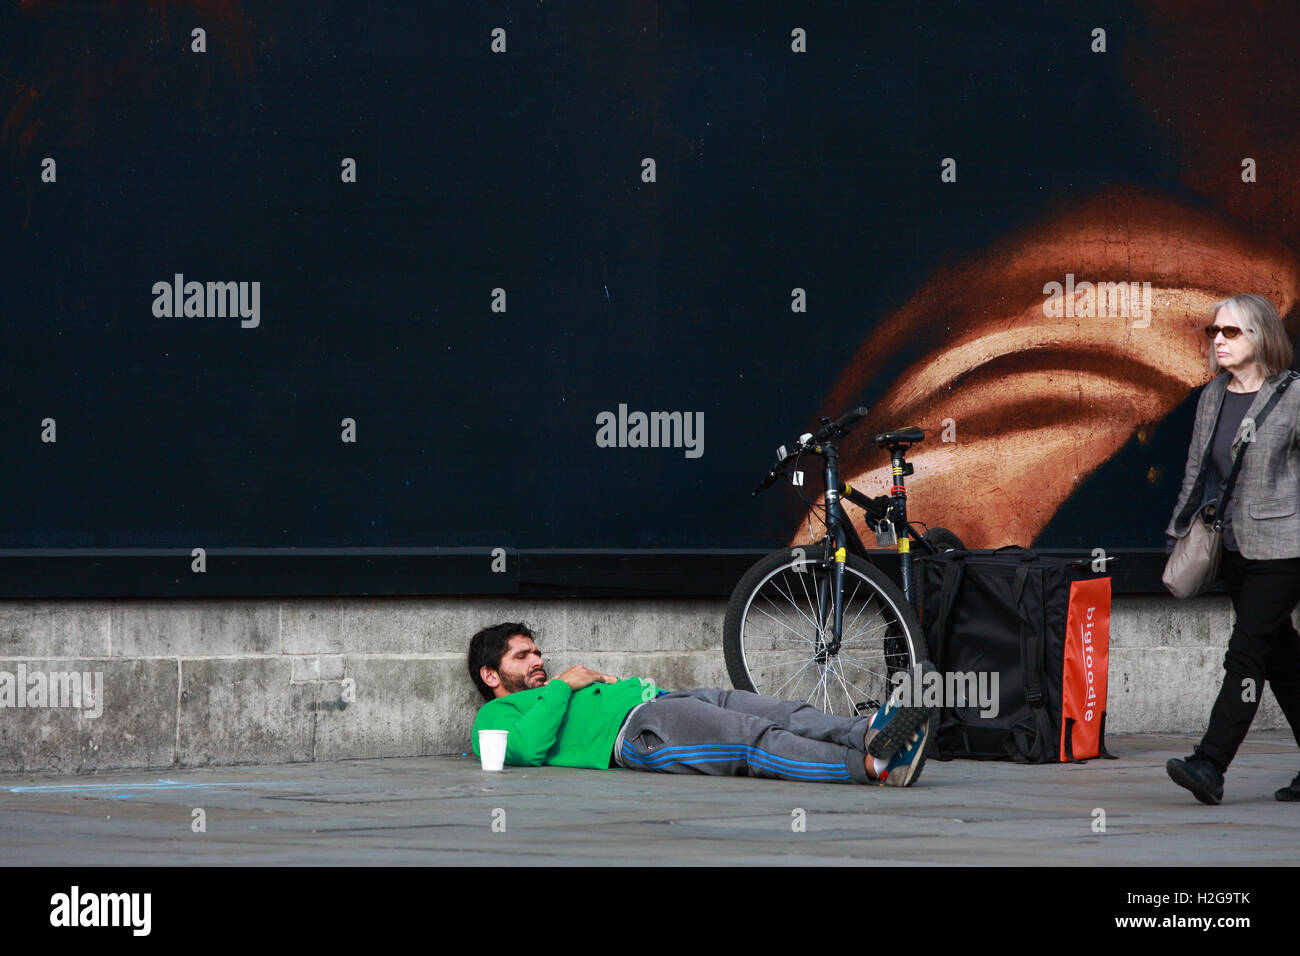 A male lies on the ground, relaxing in Trafalgar Square, London, England and a female walks passed Stock Photo